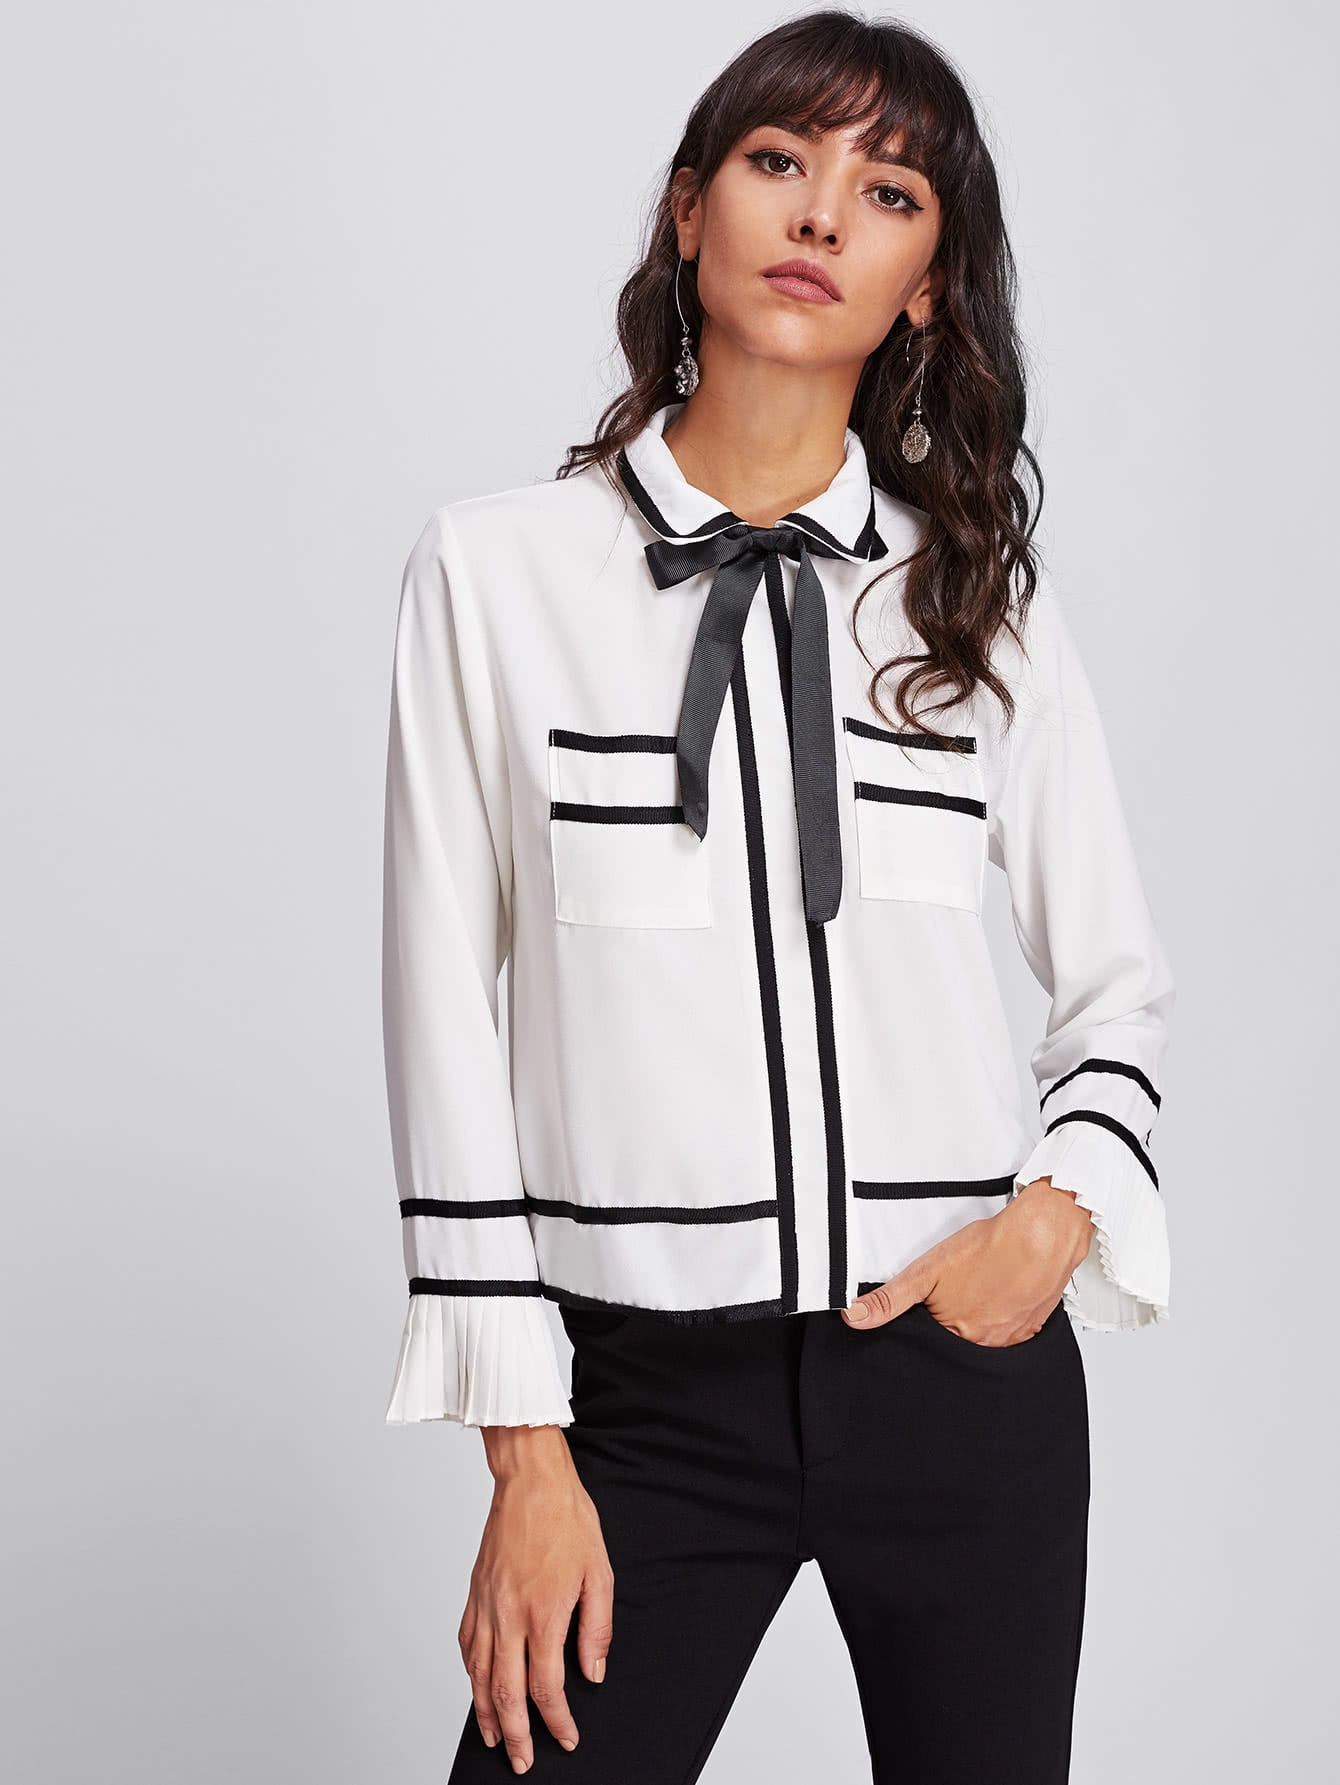 Contrast Trim Ruffle Cuff Bow Tie Neck Shirt bow tie cuff contrast patch pocket detail shirt